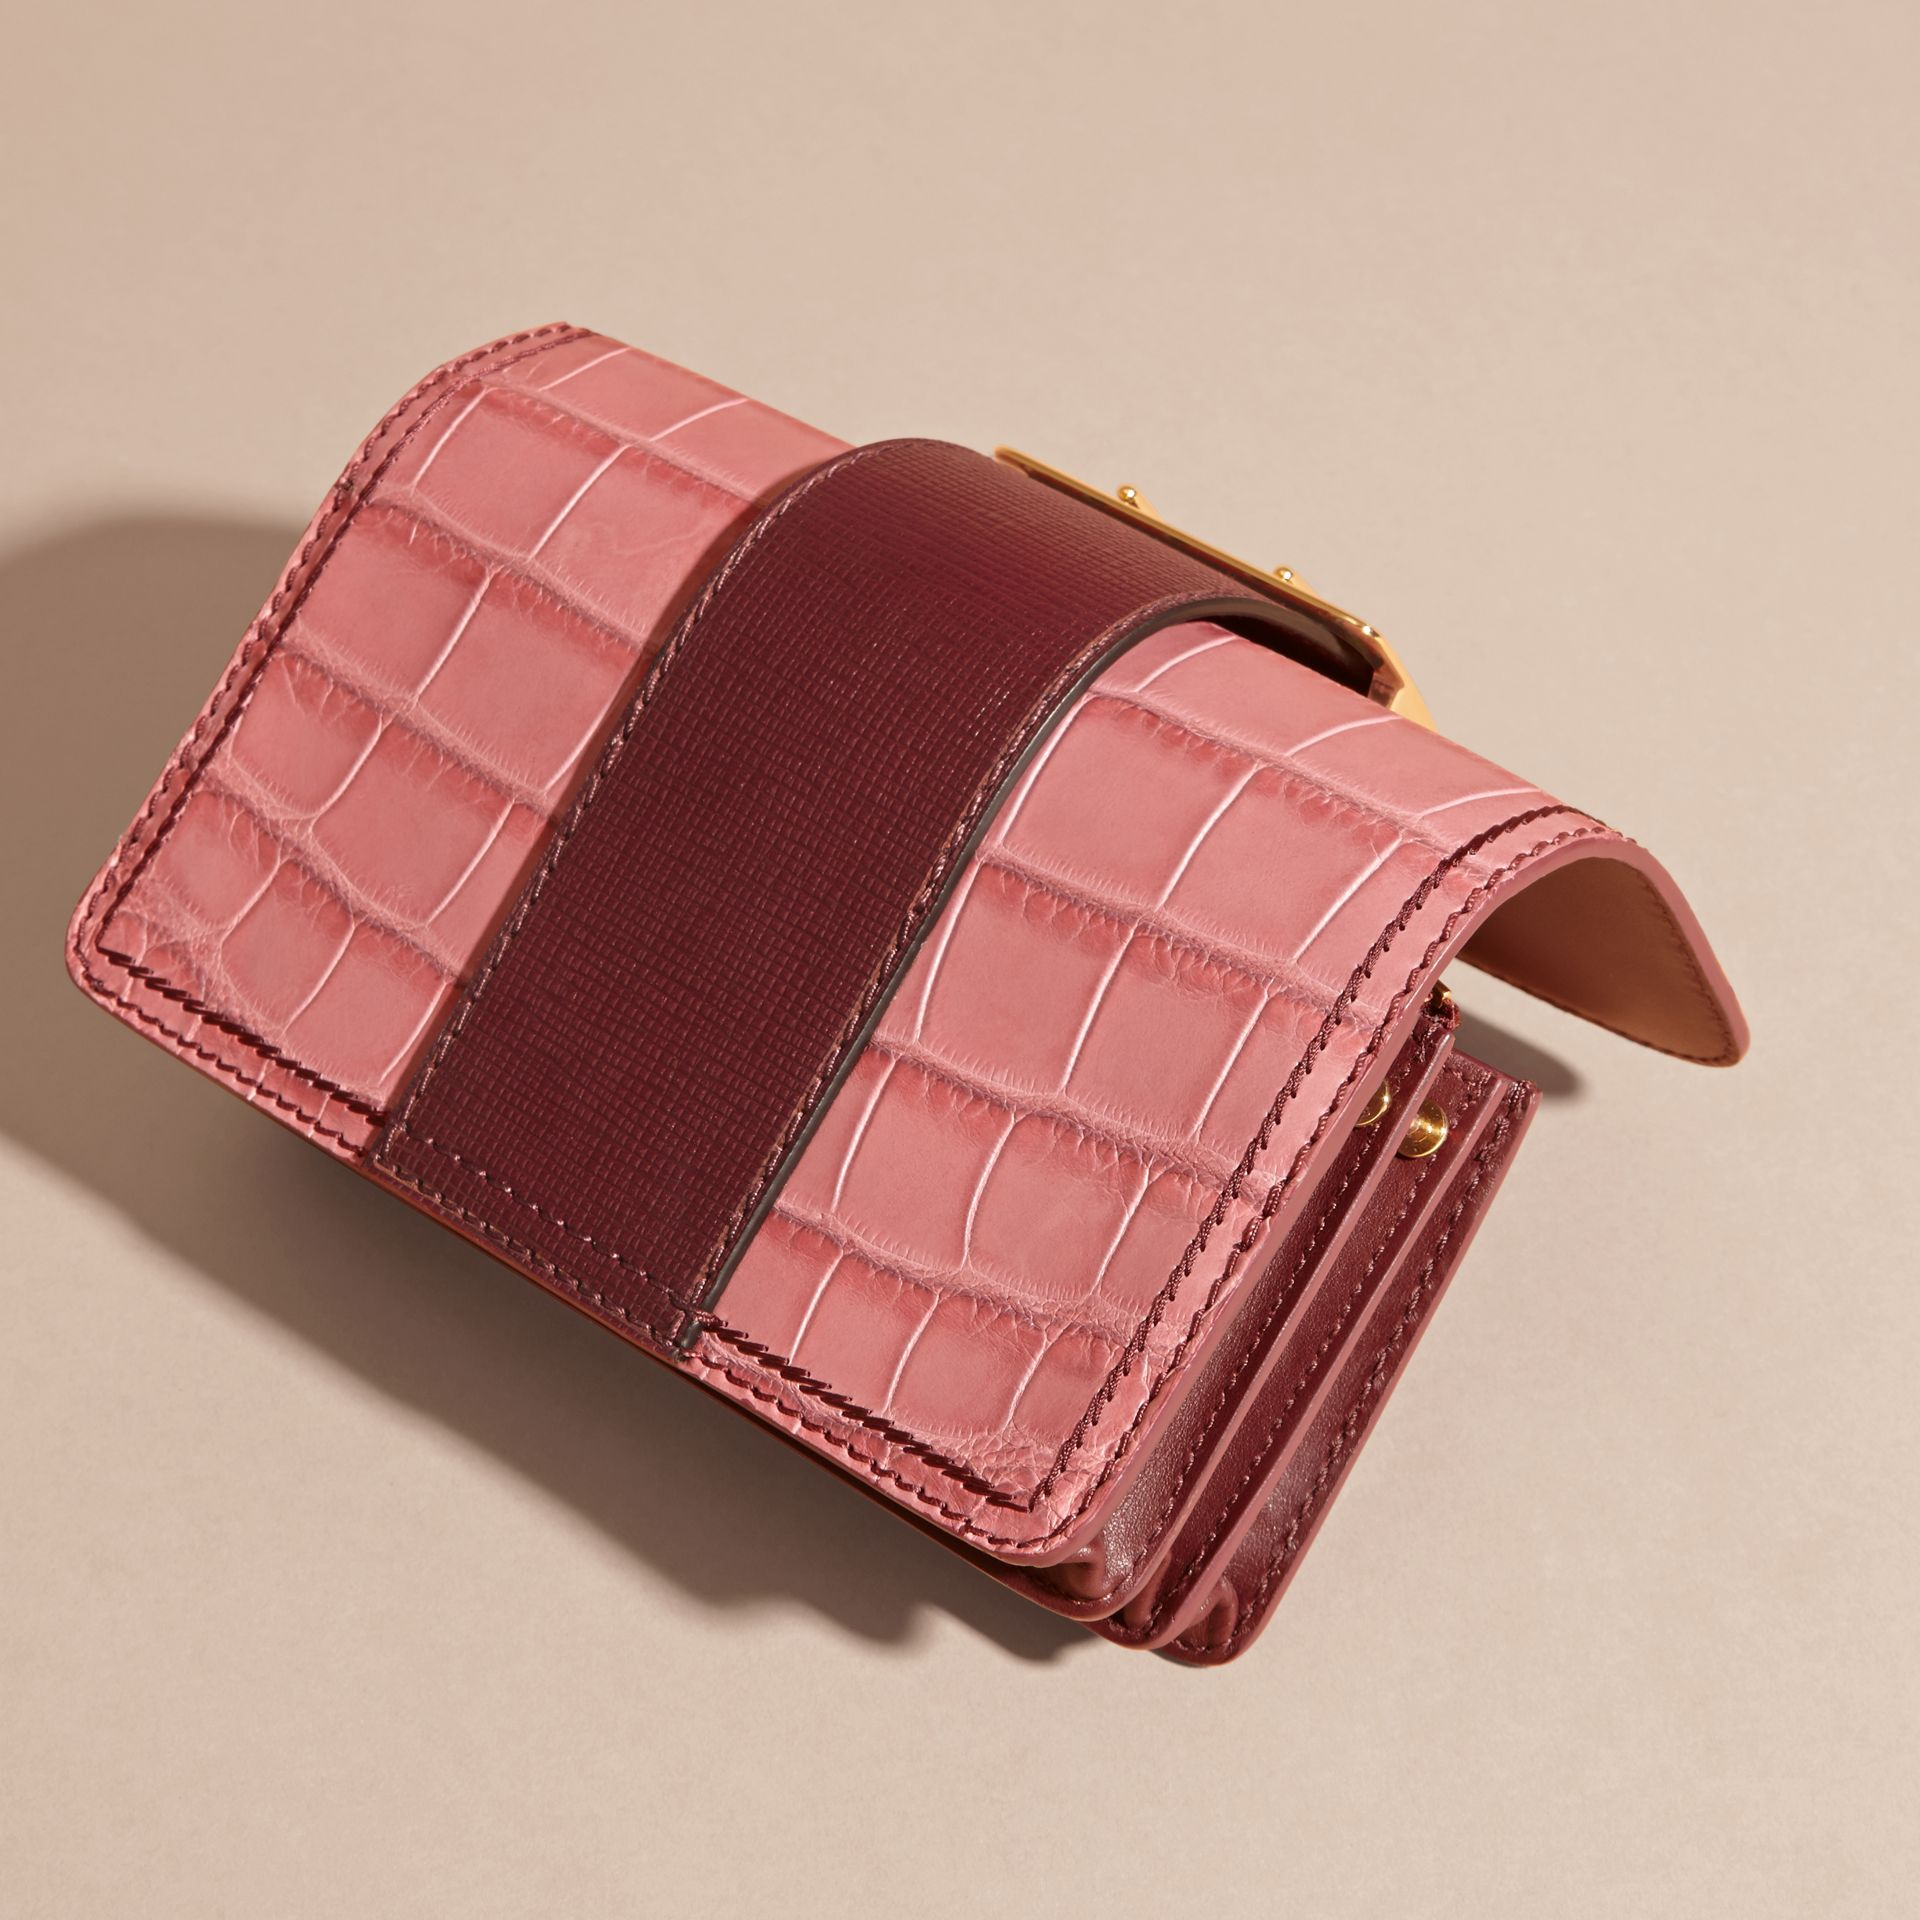 The Small Buckle Bag in Alligator and Leather in Dusky Pink/ Burgundy - Women | Burberry - gallery image 7